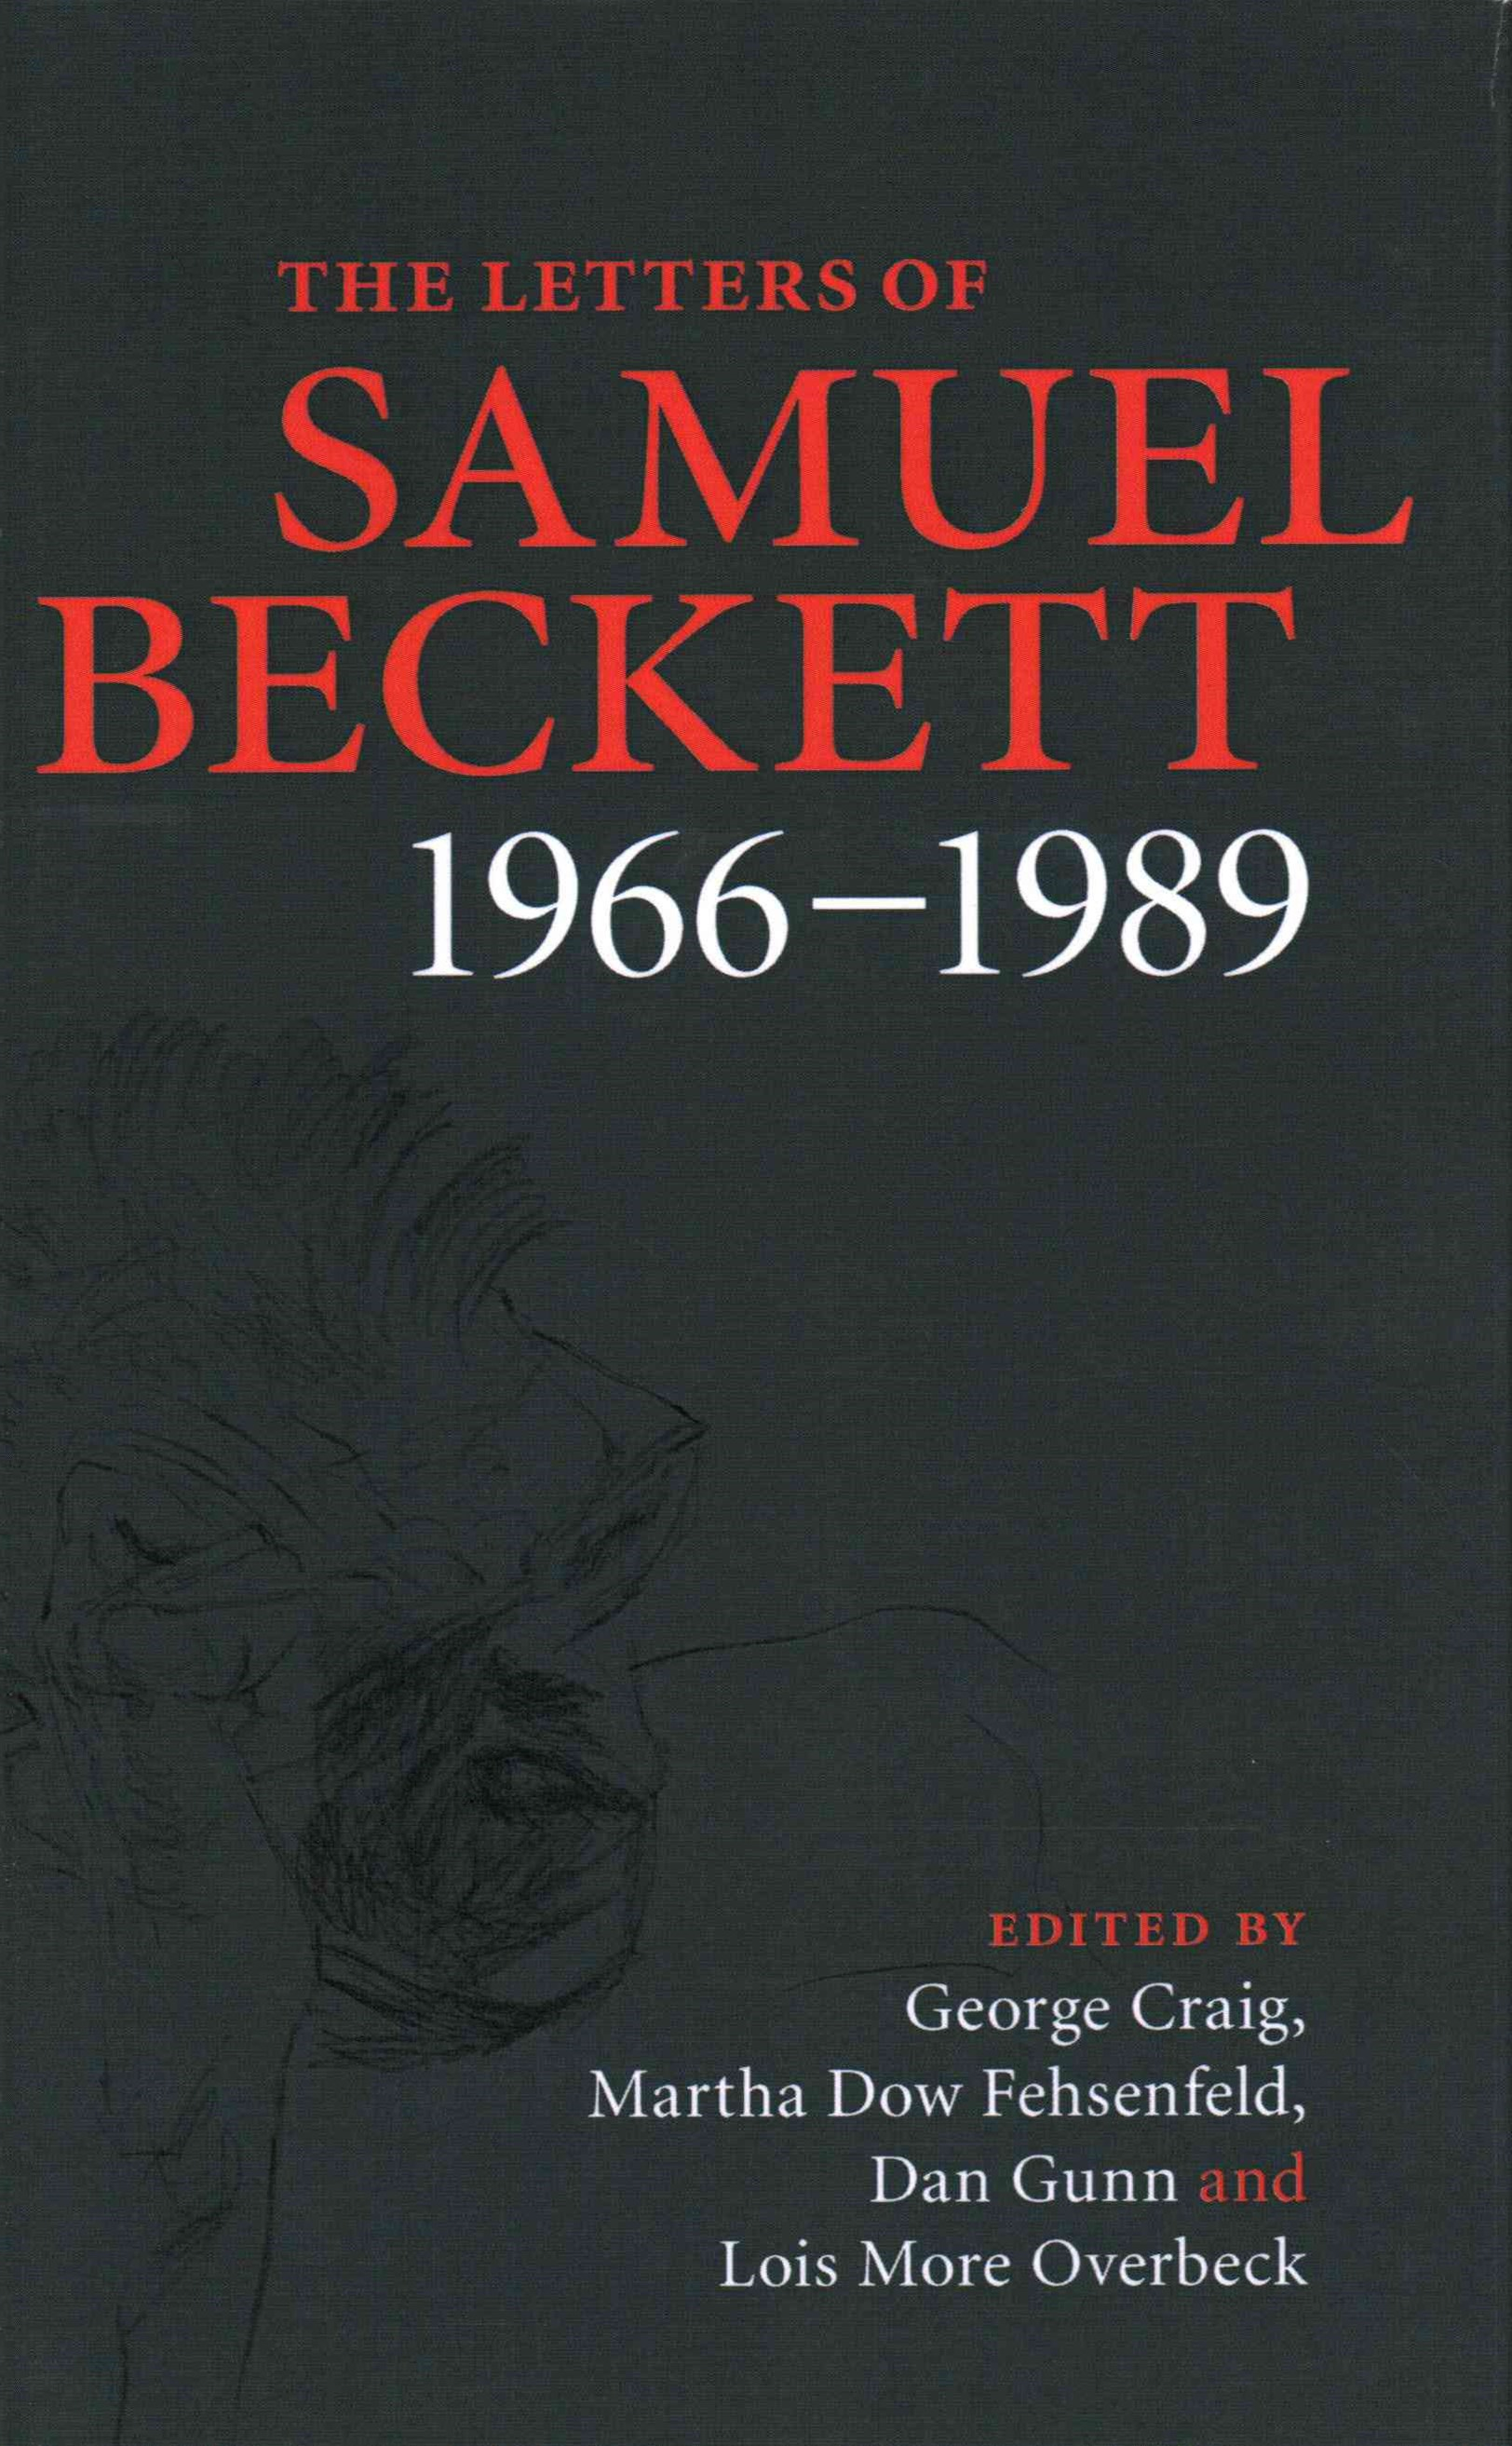 The Letters of Samuel Beckett, 1966-1989